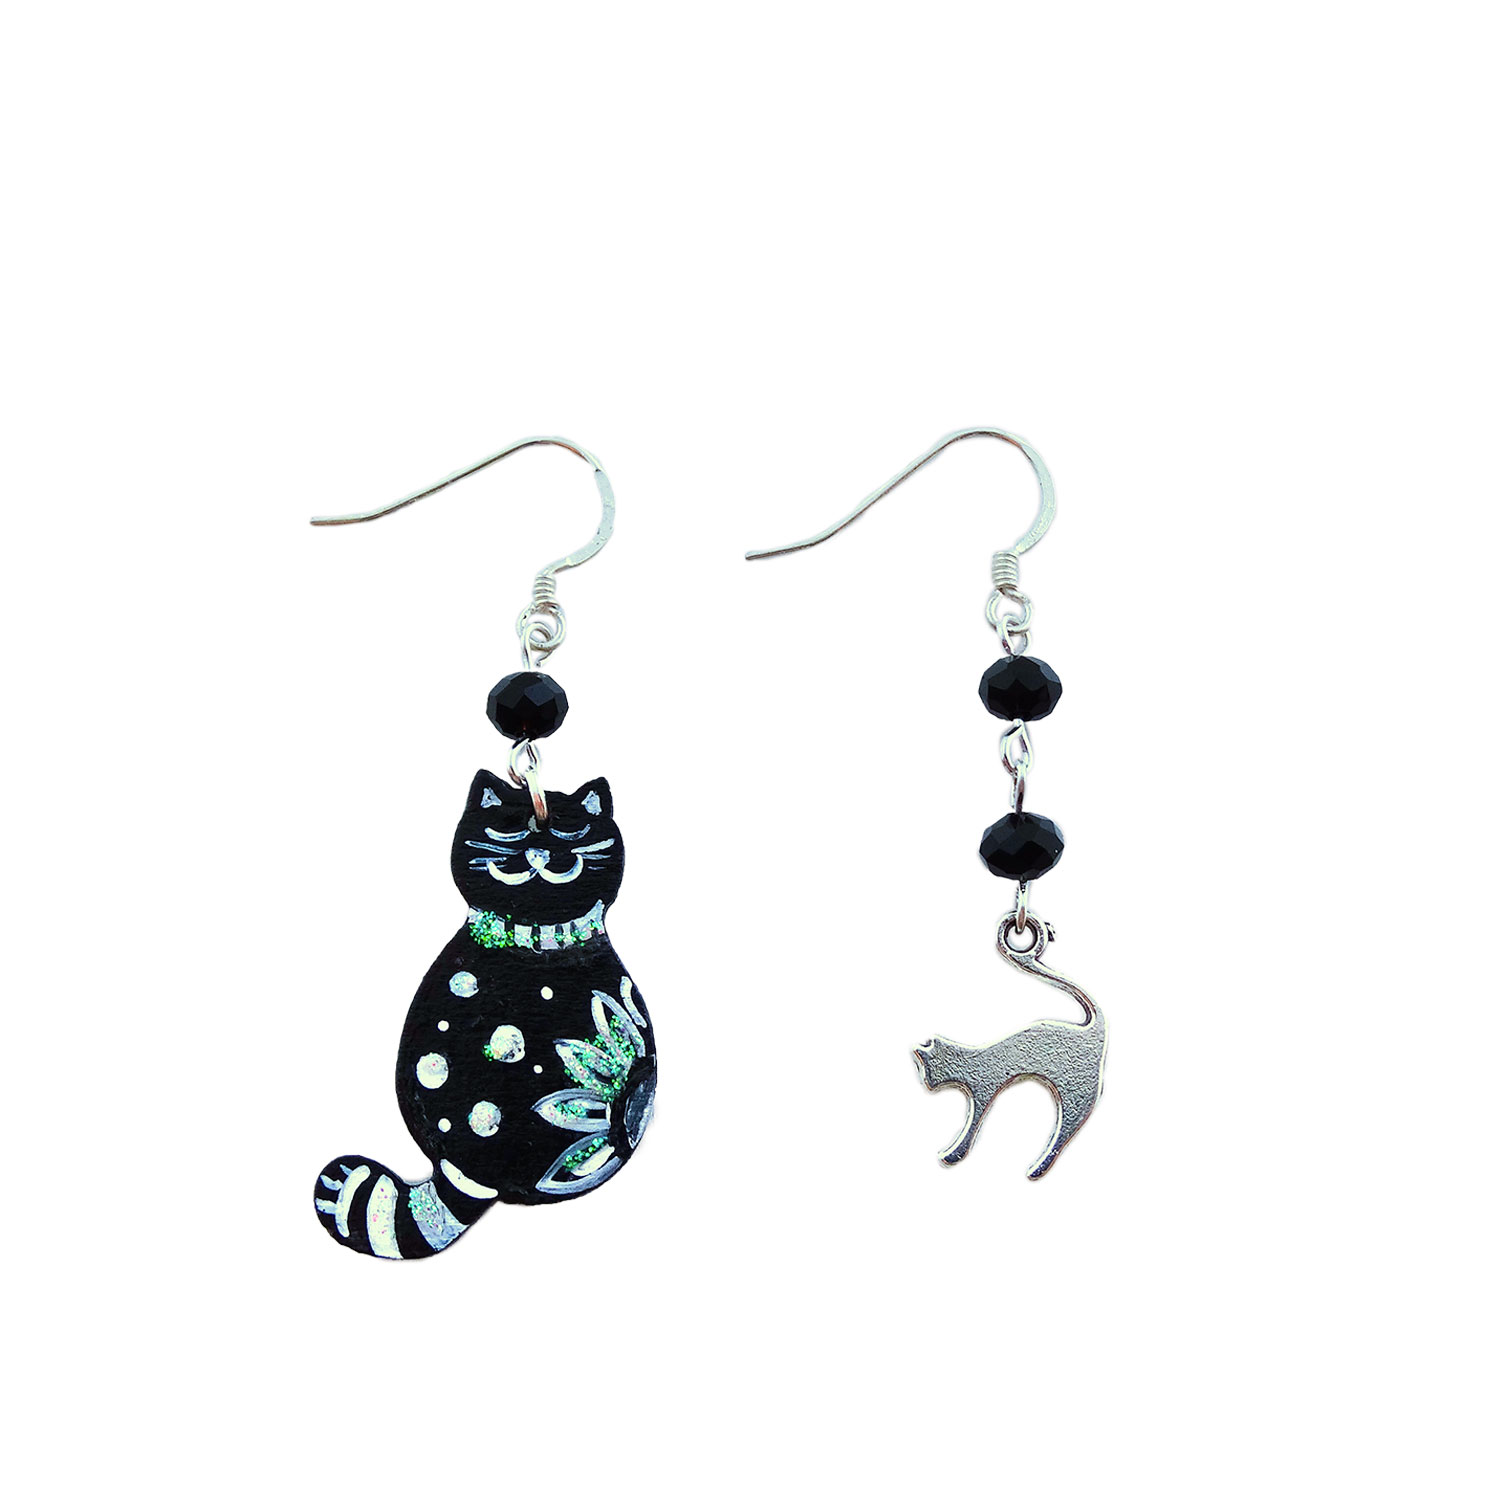 Orecchini dipinti a mano – Gattino black and white